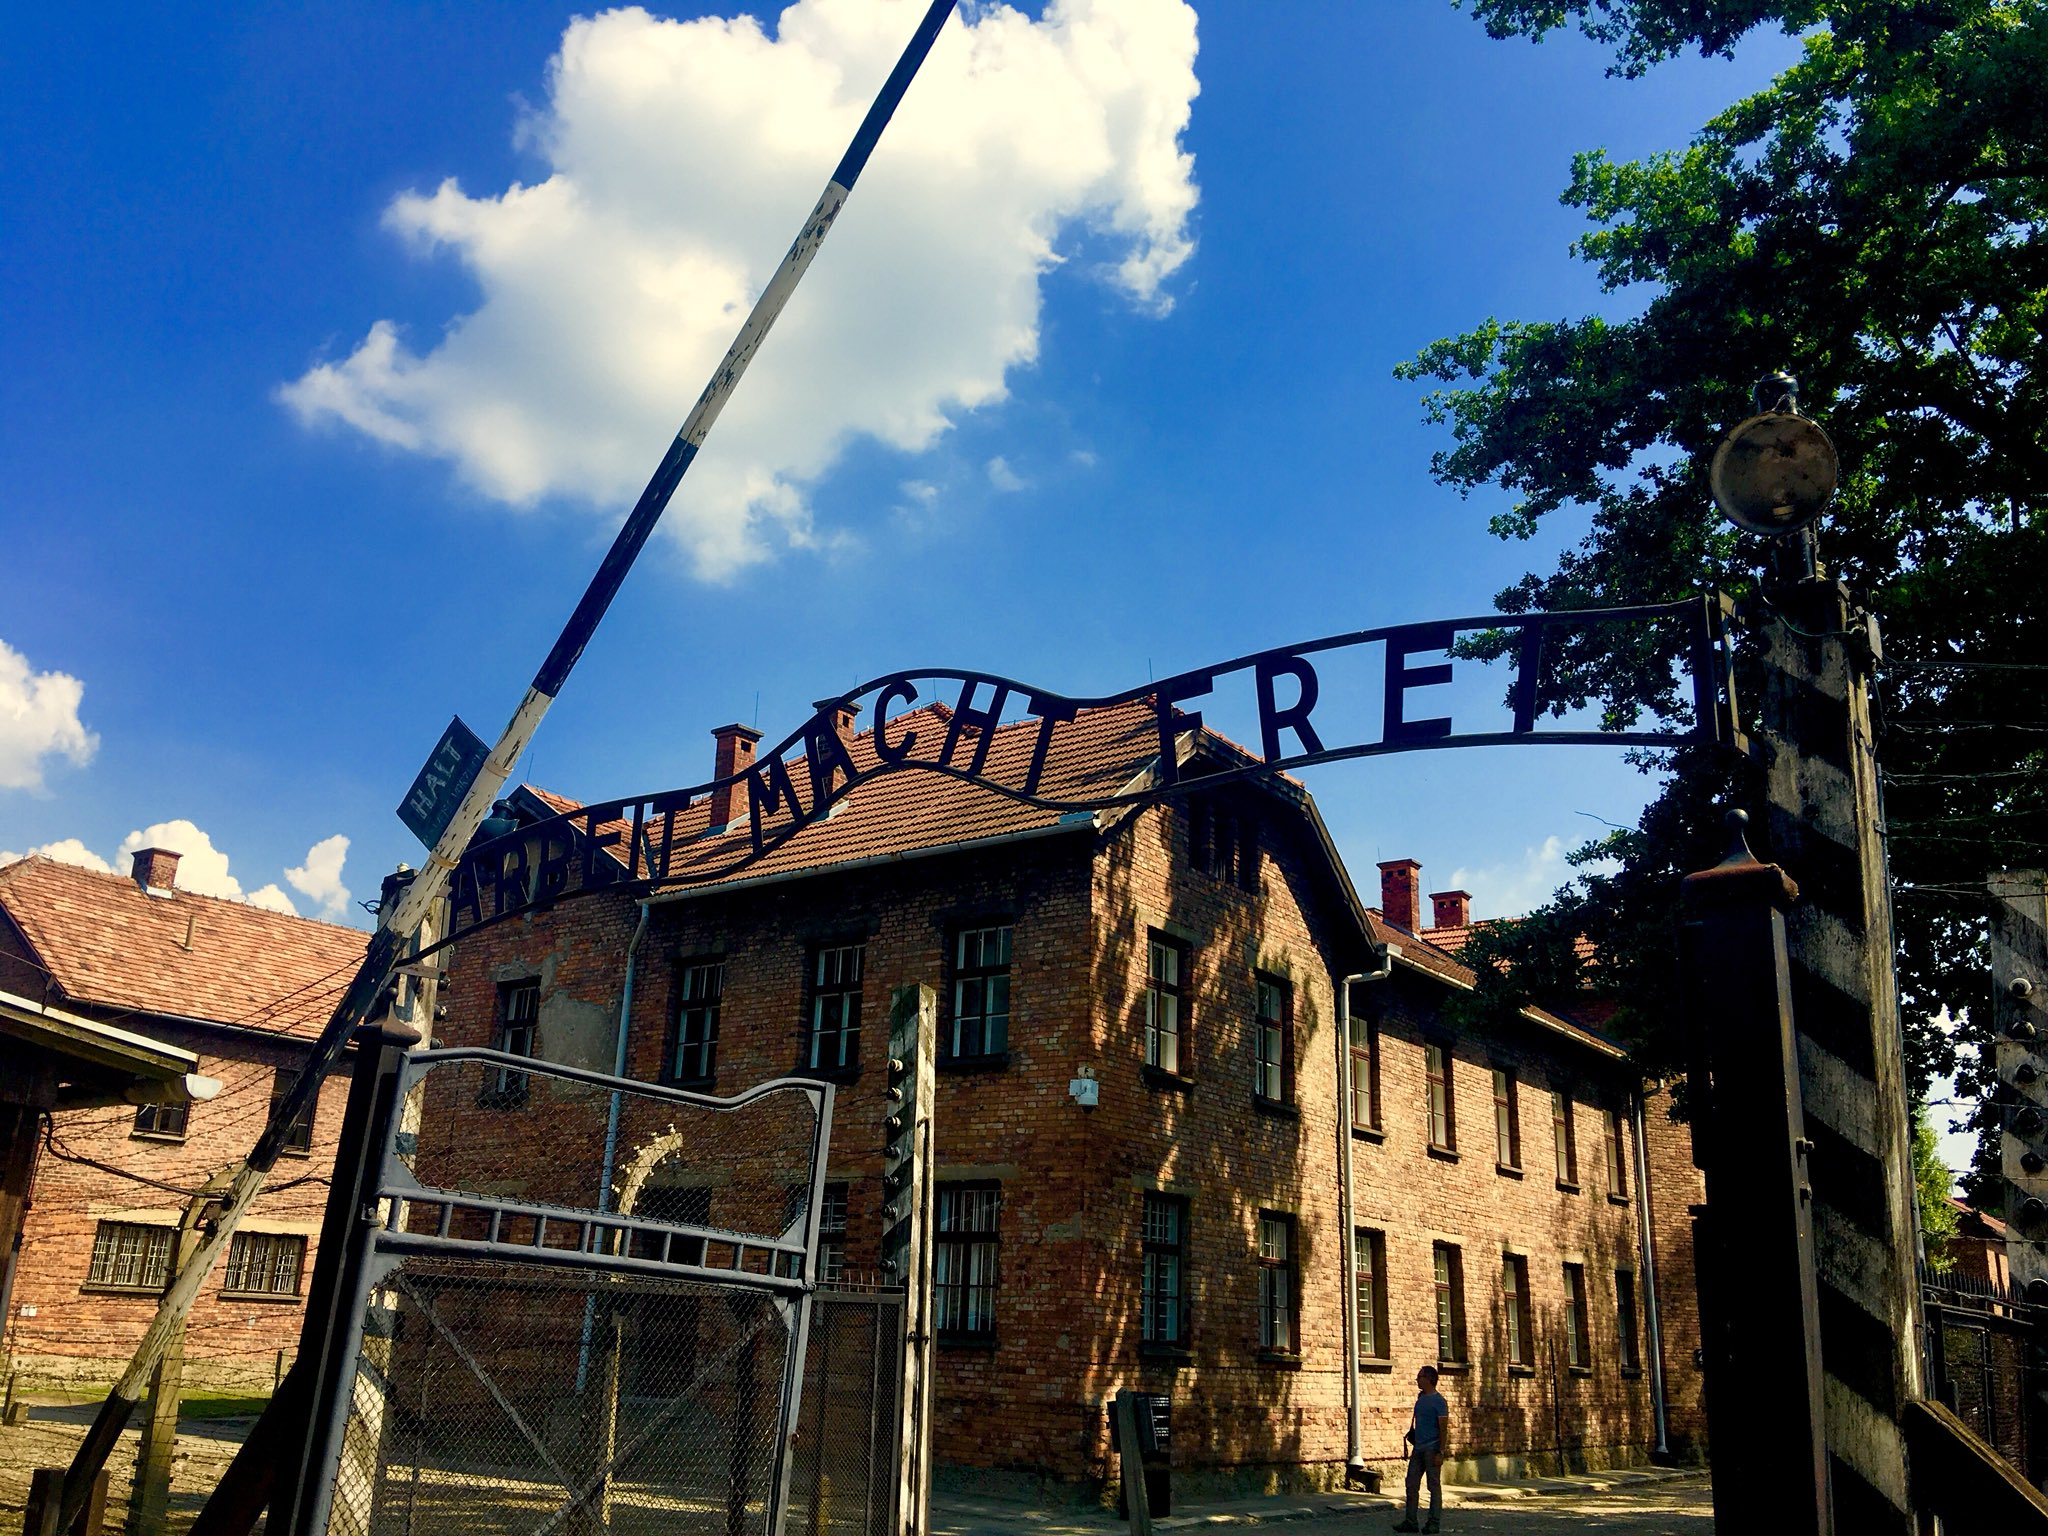 Odyssey Poland 2018, Gate of  Auschwitz I (the original concentration camp) operated by Nazi Germany in occupied Poland during World War II. https://t.co/oBhGYyfLum